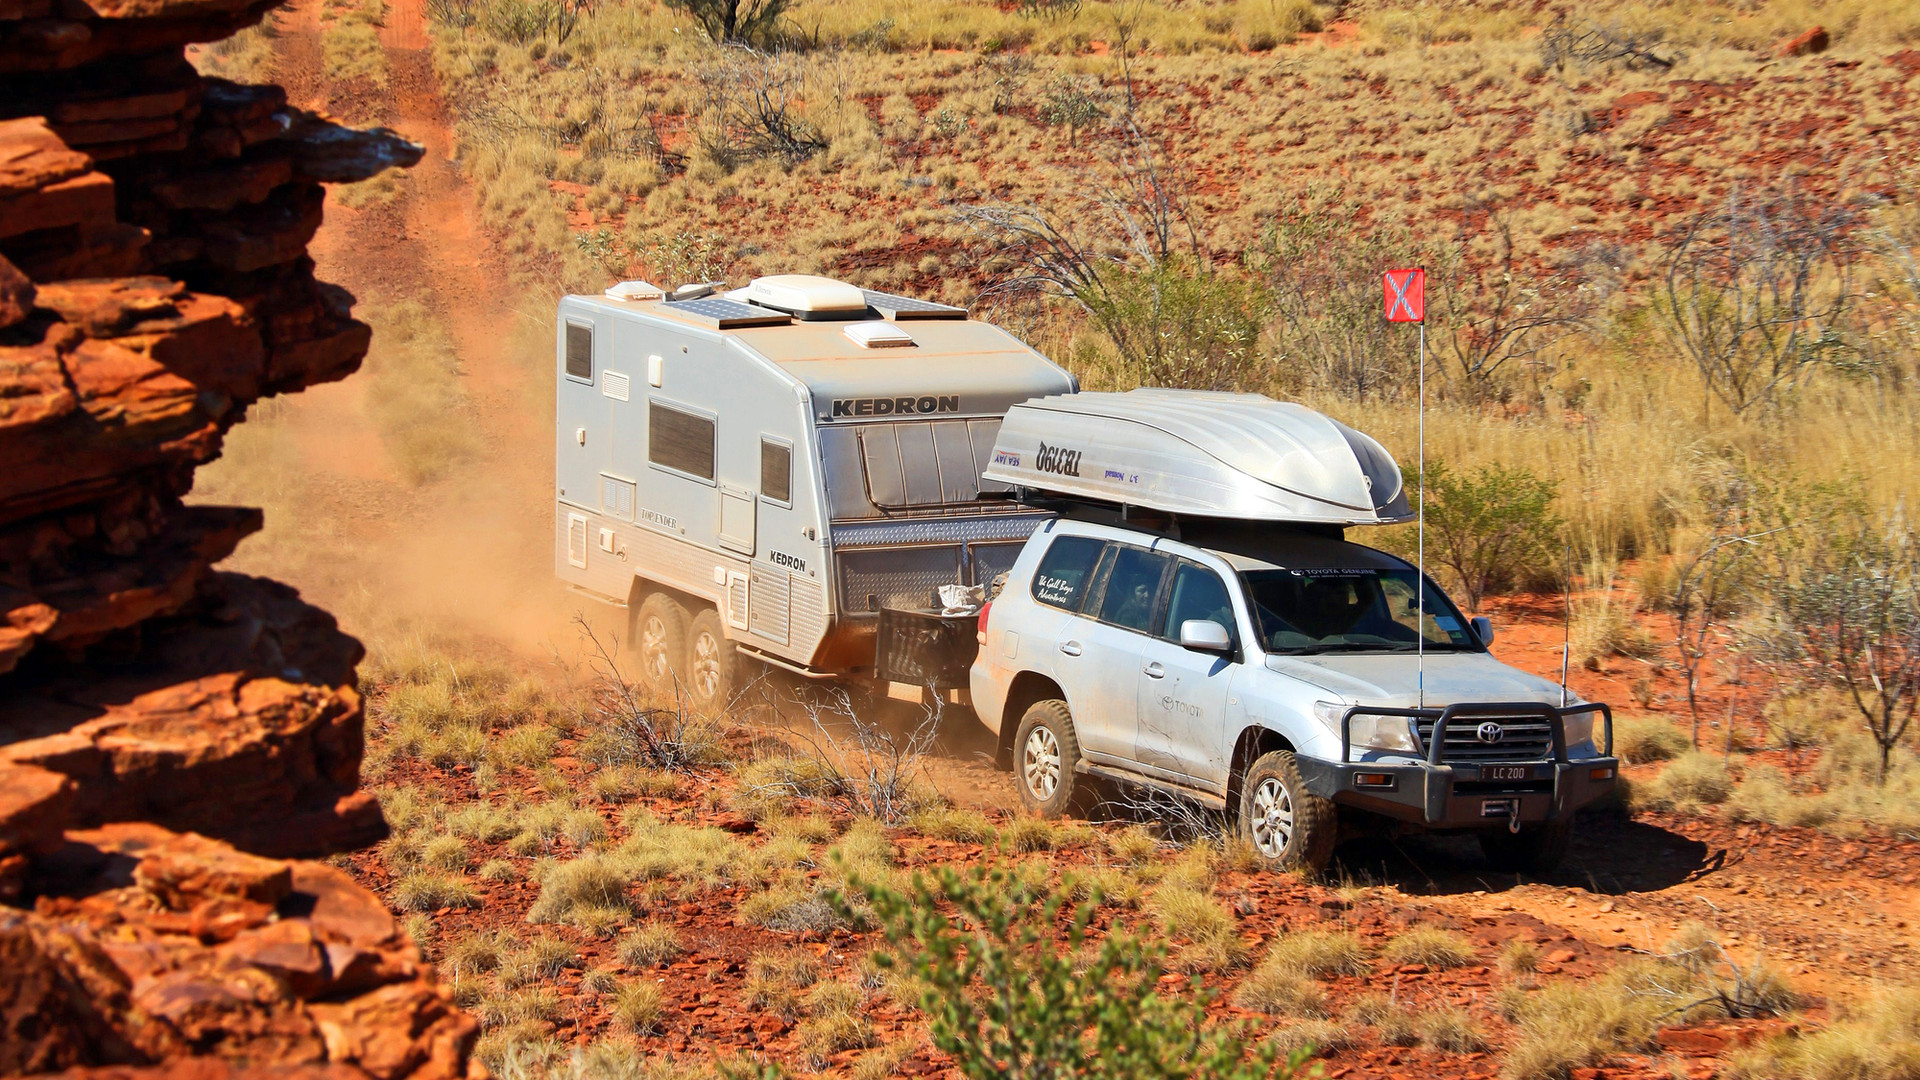 Toyota LC200 towing on The Canning Stock Route - KEDRON Caravans - image Glen Gall ©️